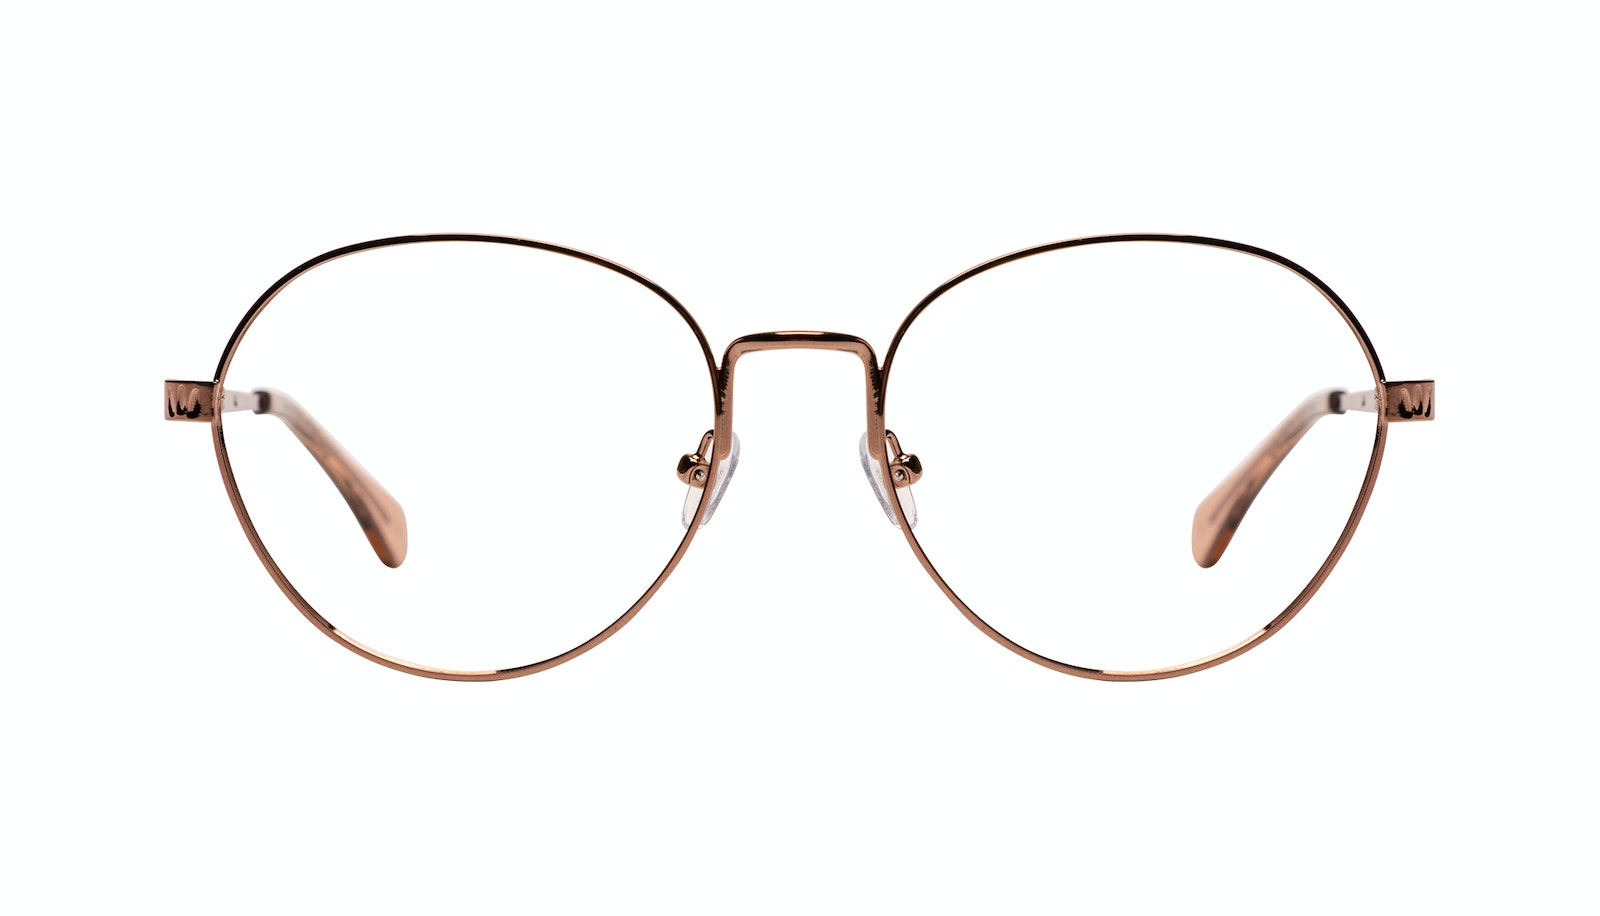 Affordable Fashion Glasses Round Eyeglasses Women Brace M Rose Gold